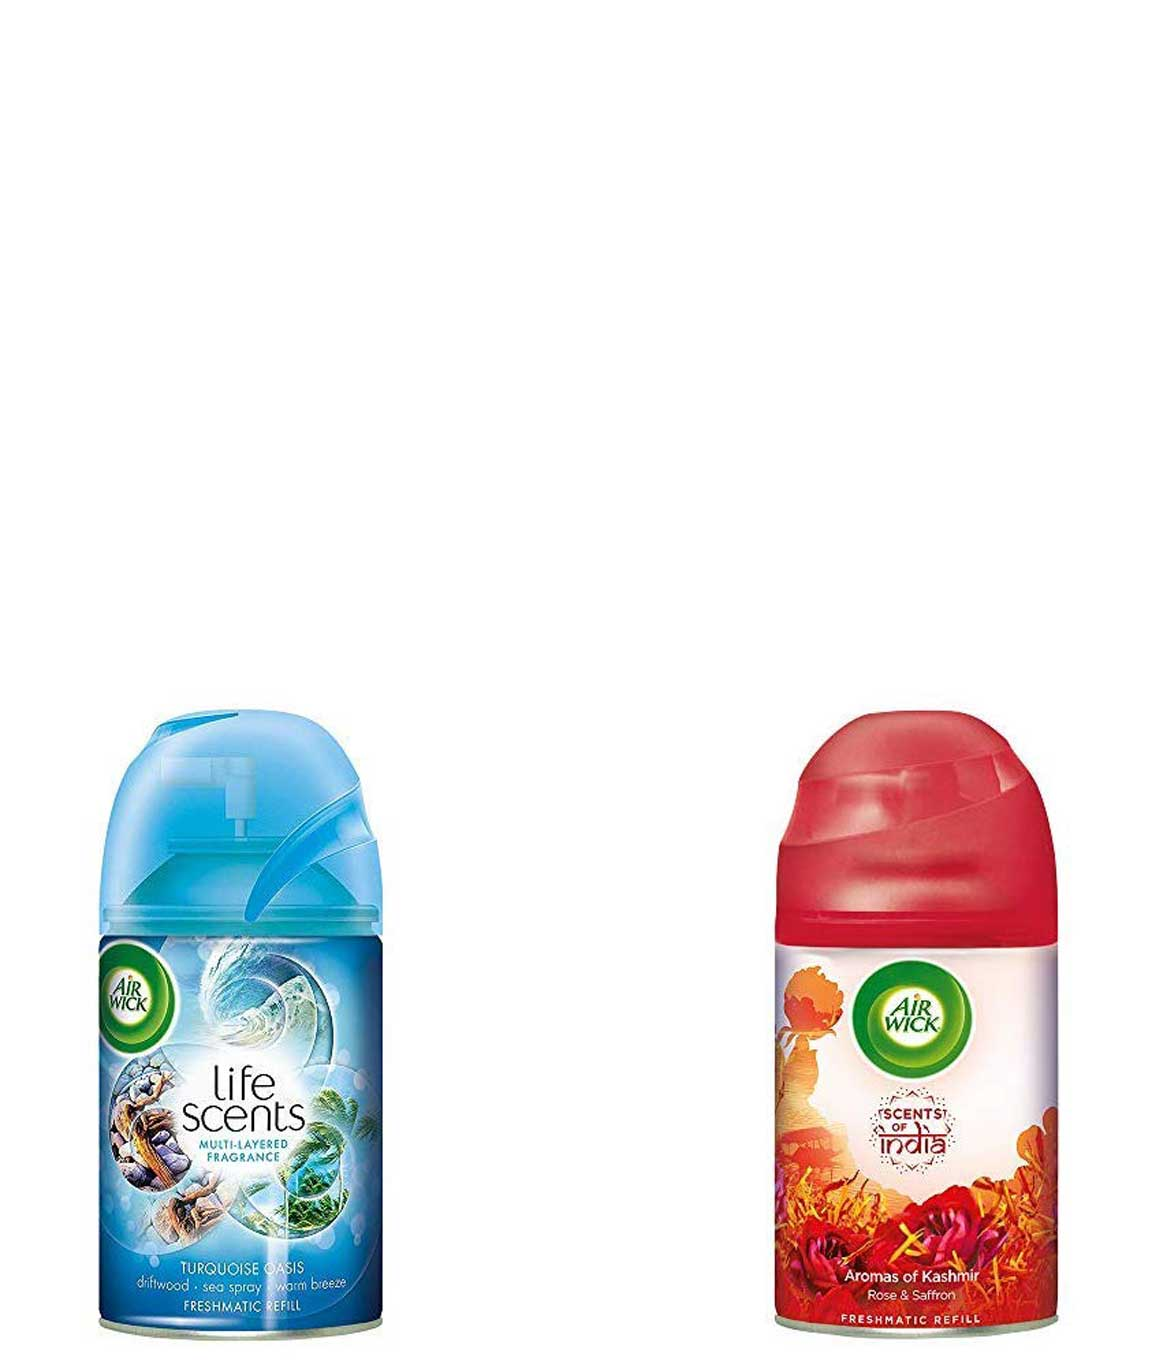 Airwick Freshmatic Refill Life Scents Turquoise Oasis - 250 ml & `Scents of India` Freshmatic Air Freshner Refill, Aromas of Kashmir - 250 ml Combo